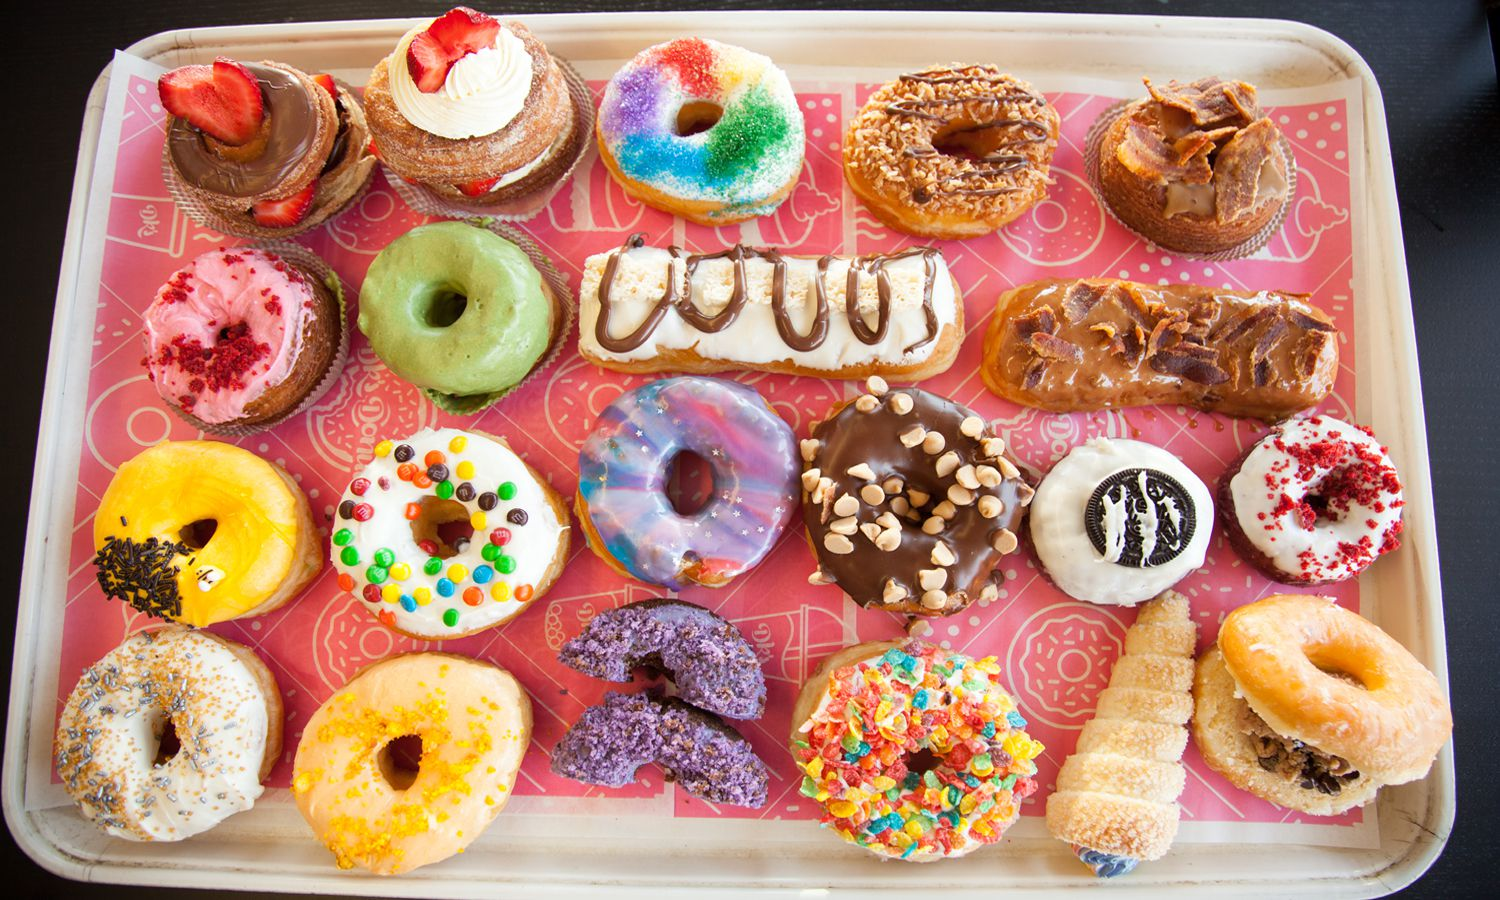 DK's Donuts